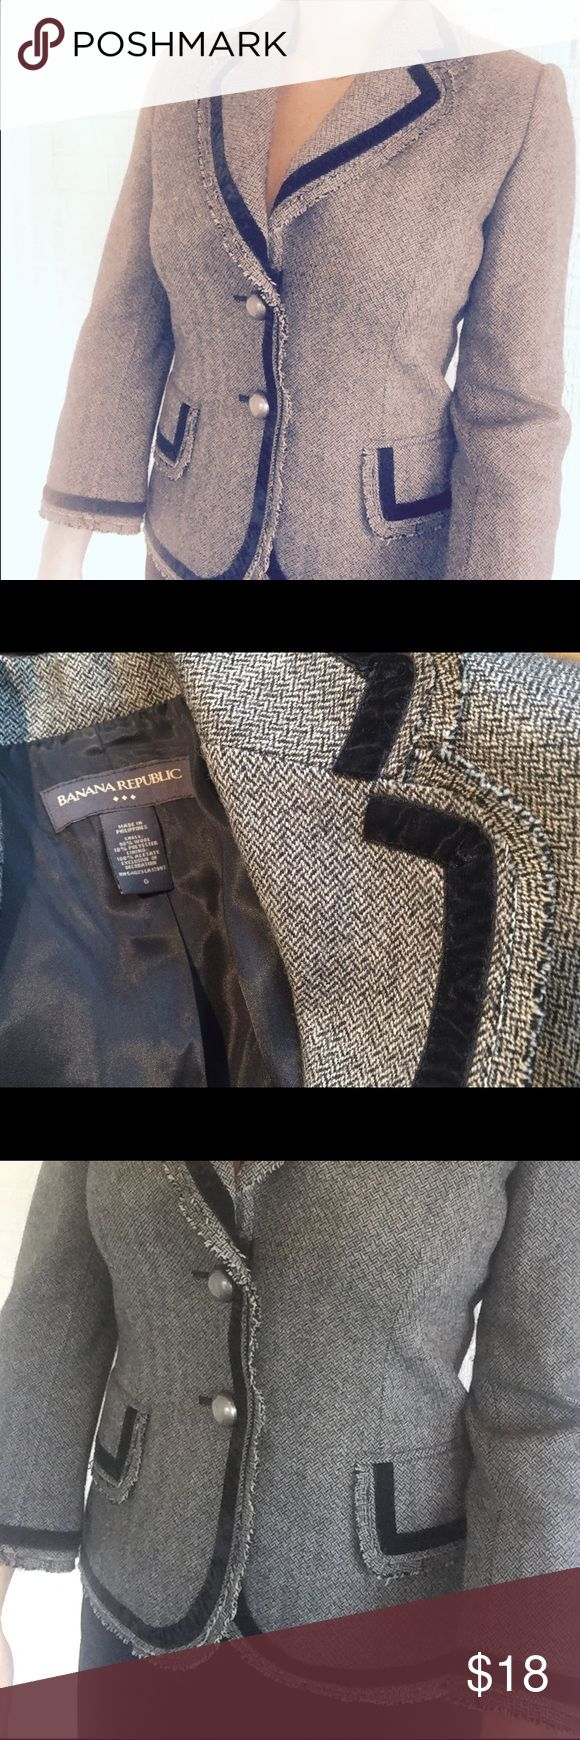 Banana Republic   Tweed Blazer w Velvet Detailing Love this blazer - just never wear it (I live in Houston and wore shorts on Christmas Day!). Hoping someone will get some good use out of this - great piece to wear to work 💼👊🏼 Banana Republic Jackets & Coats Blazers